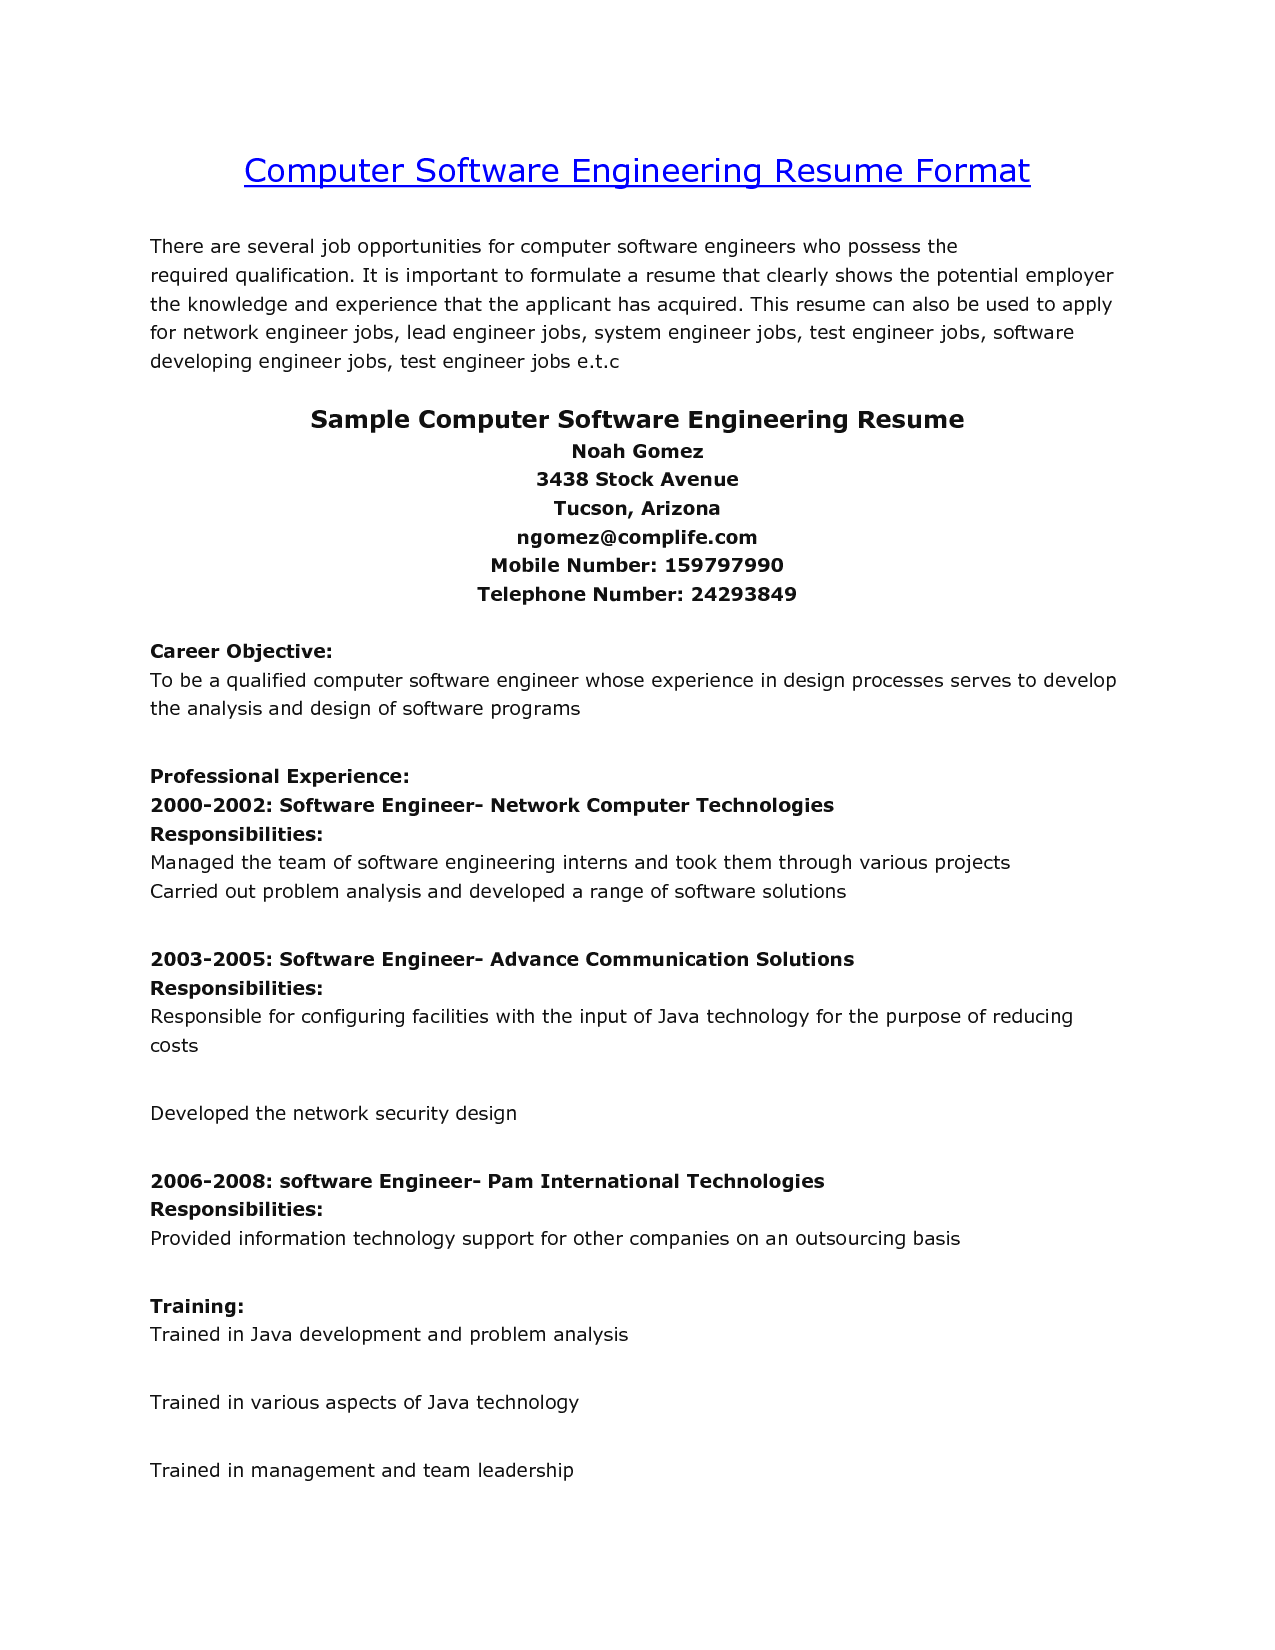 sample computer engineering resume resumecareer info - Computer Software Experience Examples